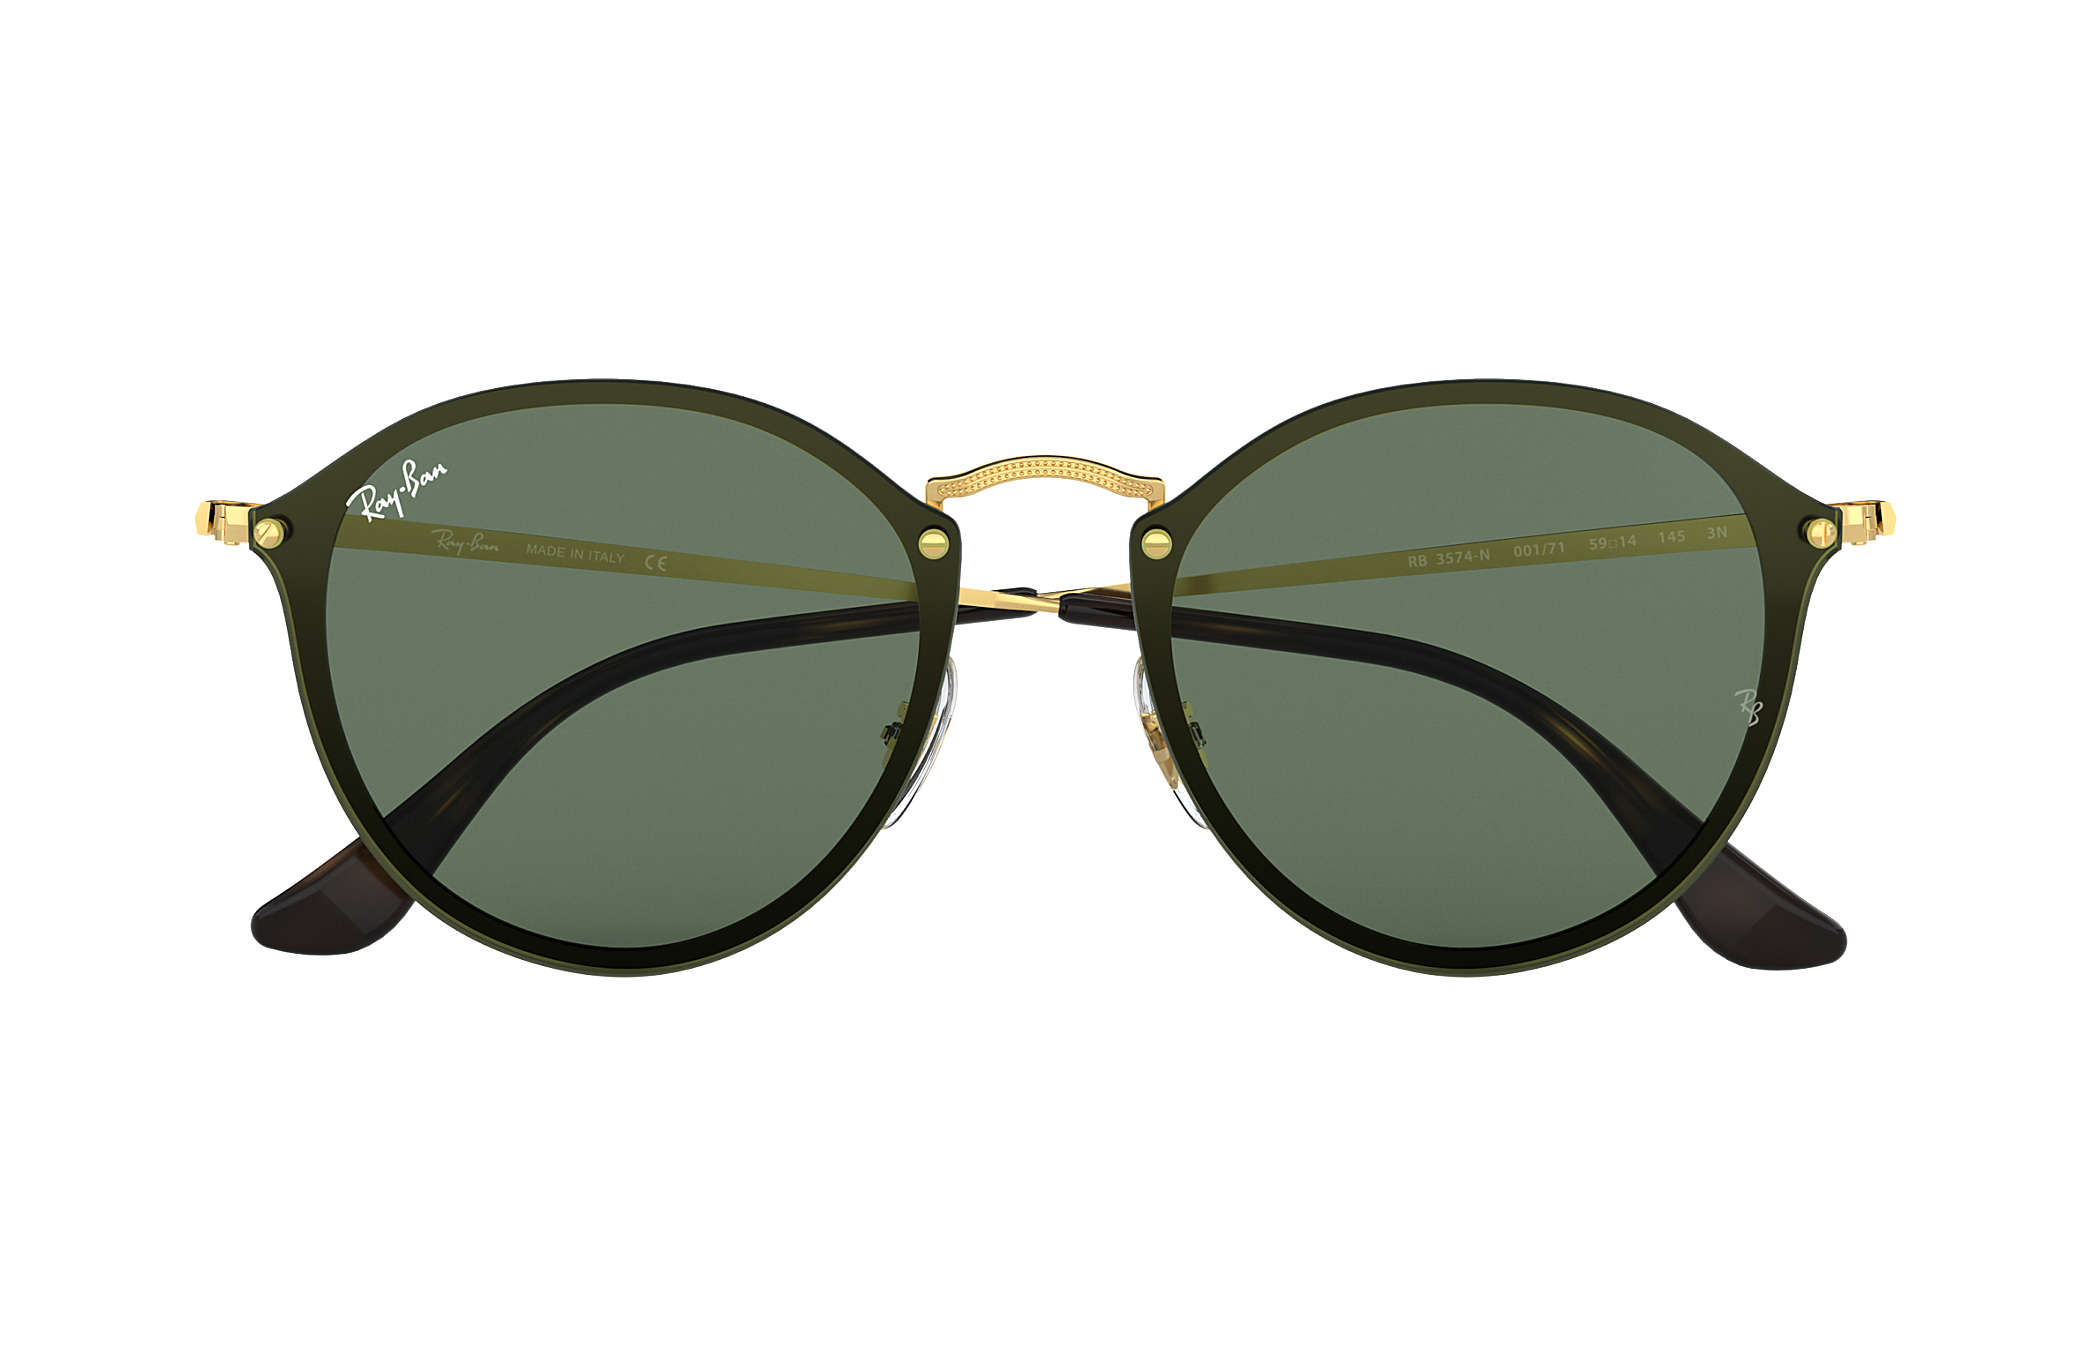 6a66555a6 Ray-Ban Blaze Round RB3574N Gold - Metal - Green Lenses ...